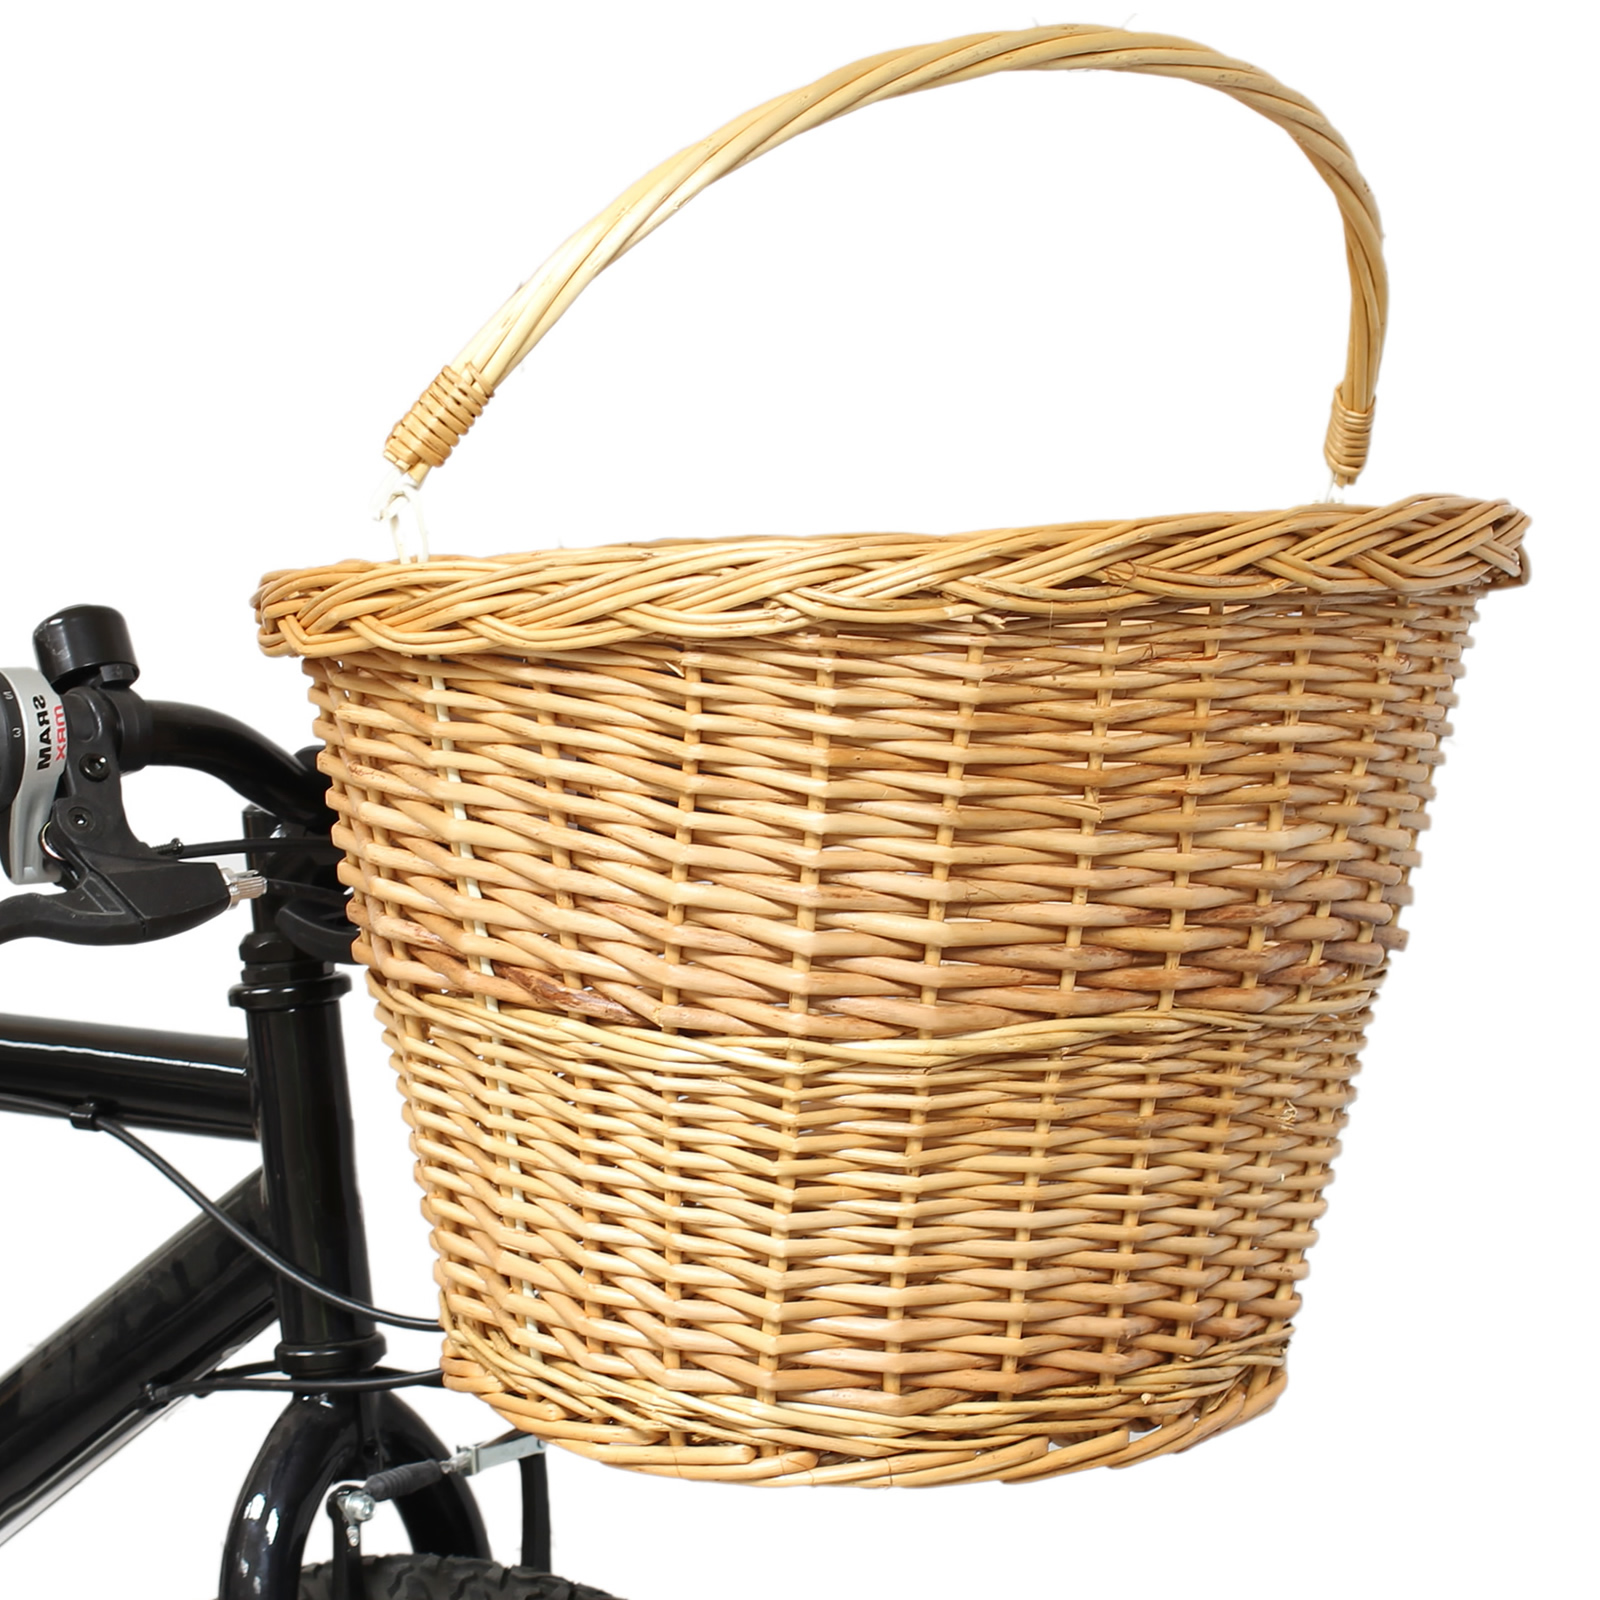 PEDALPRO BICYCLE/BIKE/CYCLE HANDLEBAR WICKER SHOPPING BASKET WITH CARRY HANDLE